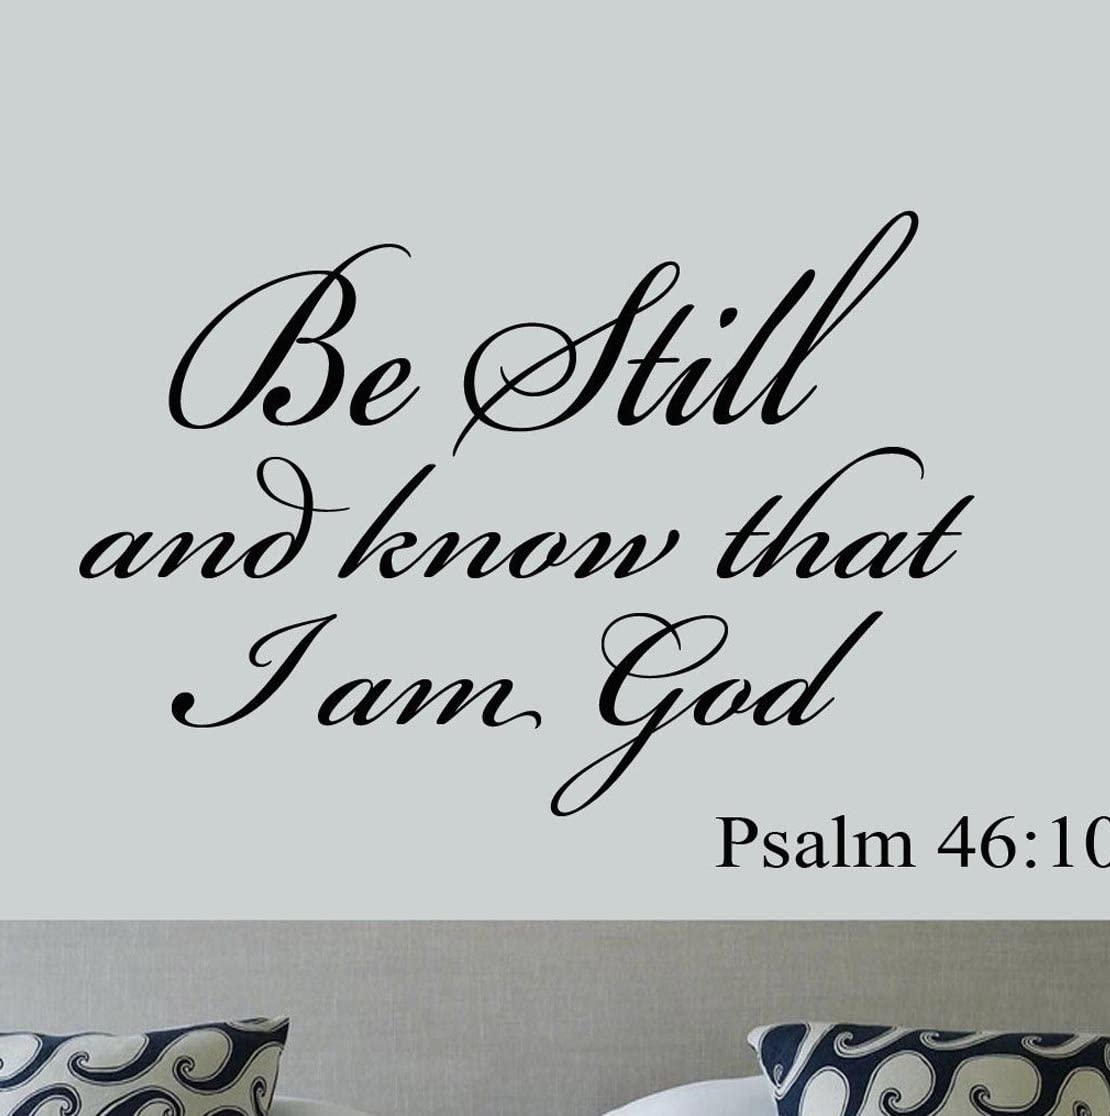 Amazon Com Be Still And Know That I Am God Psalm 46 10 Vinyl Wall Art Religious Home Decor Quote Bible Scripture Wall Decals Arts Crafts Sewing